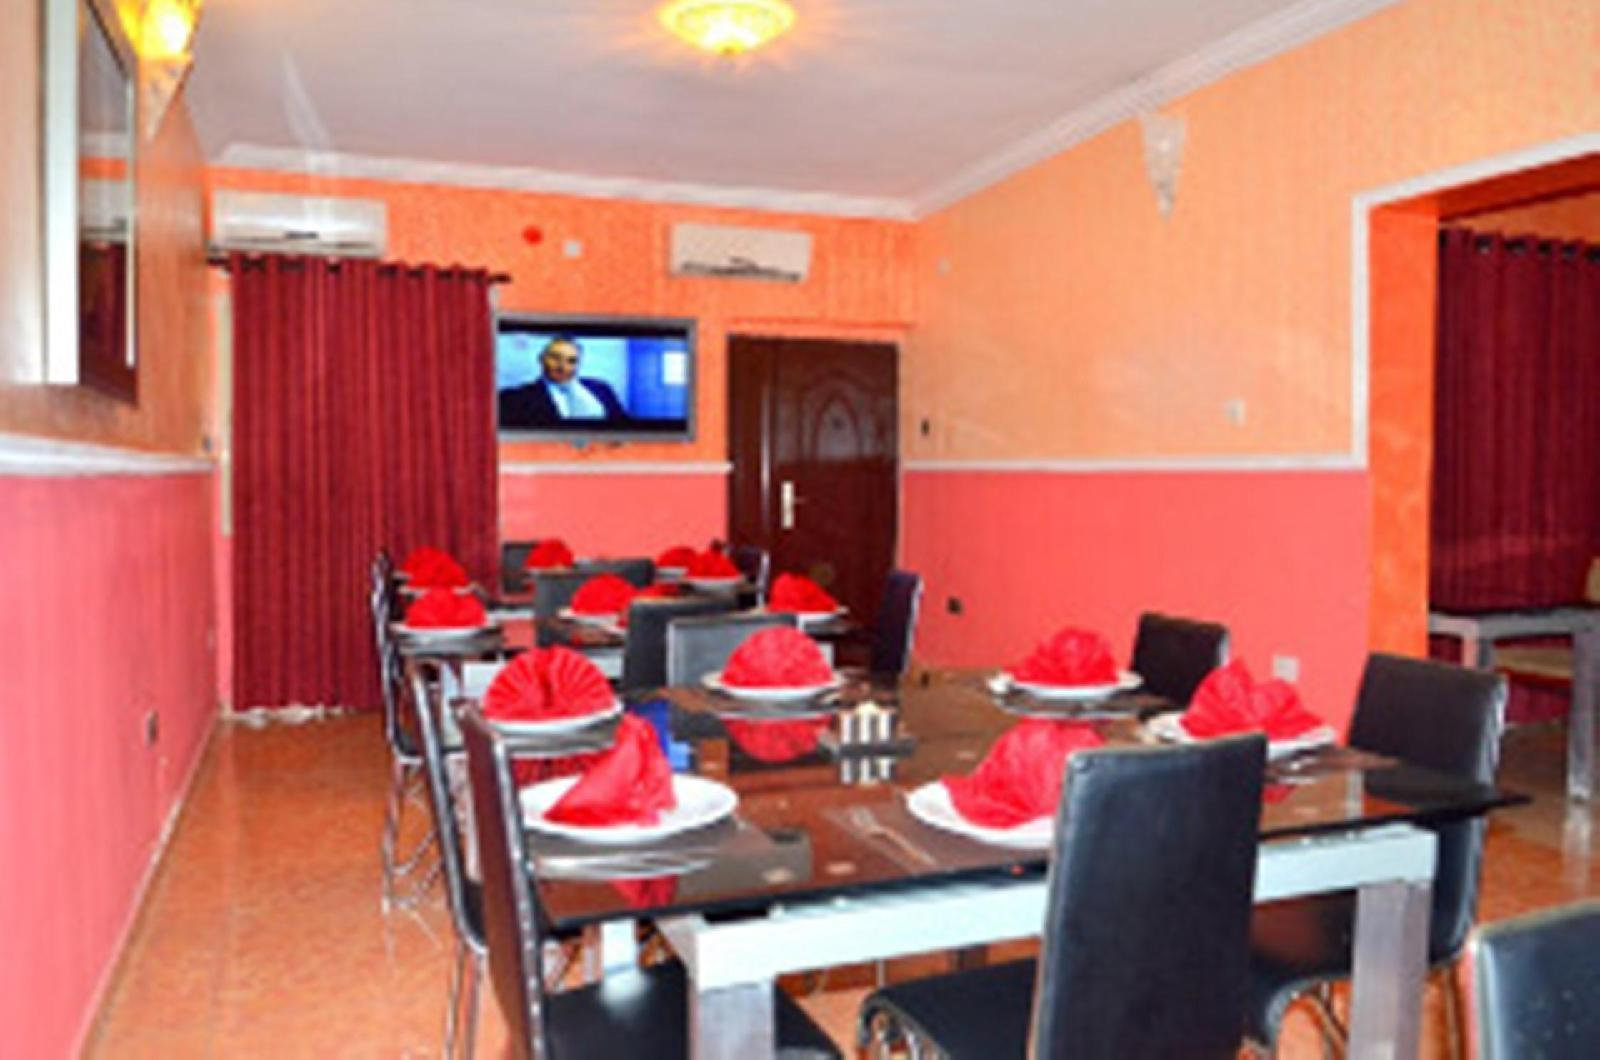 Bleu Ivy Hotel and Suites, Mushin